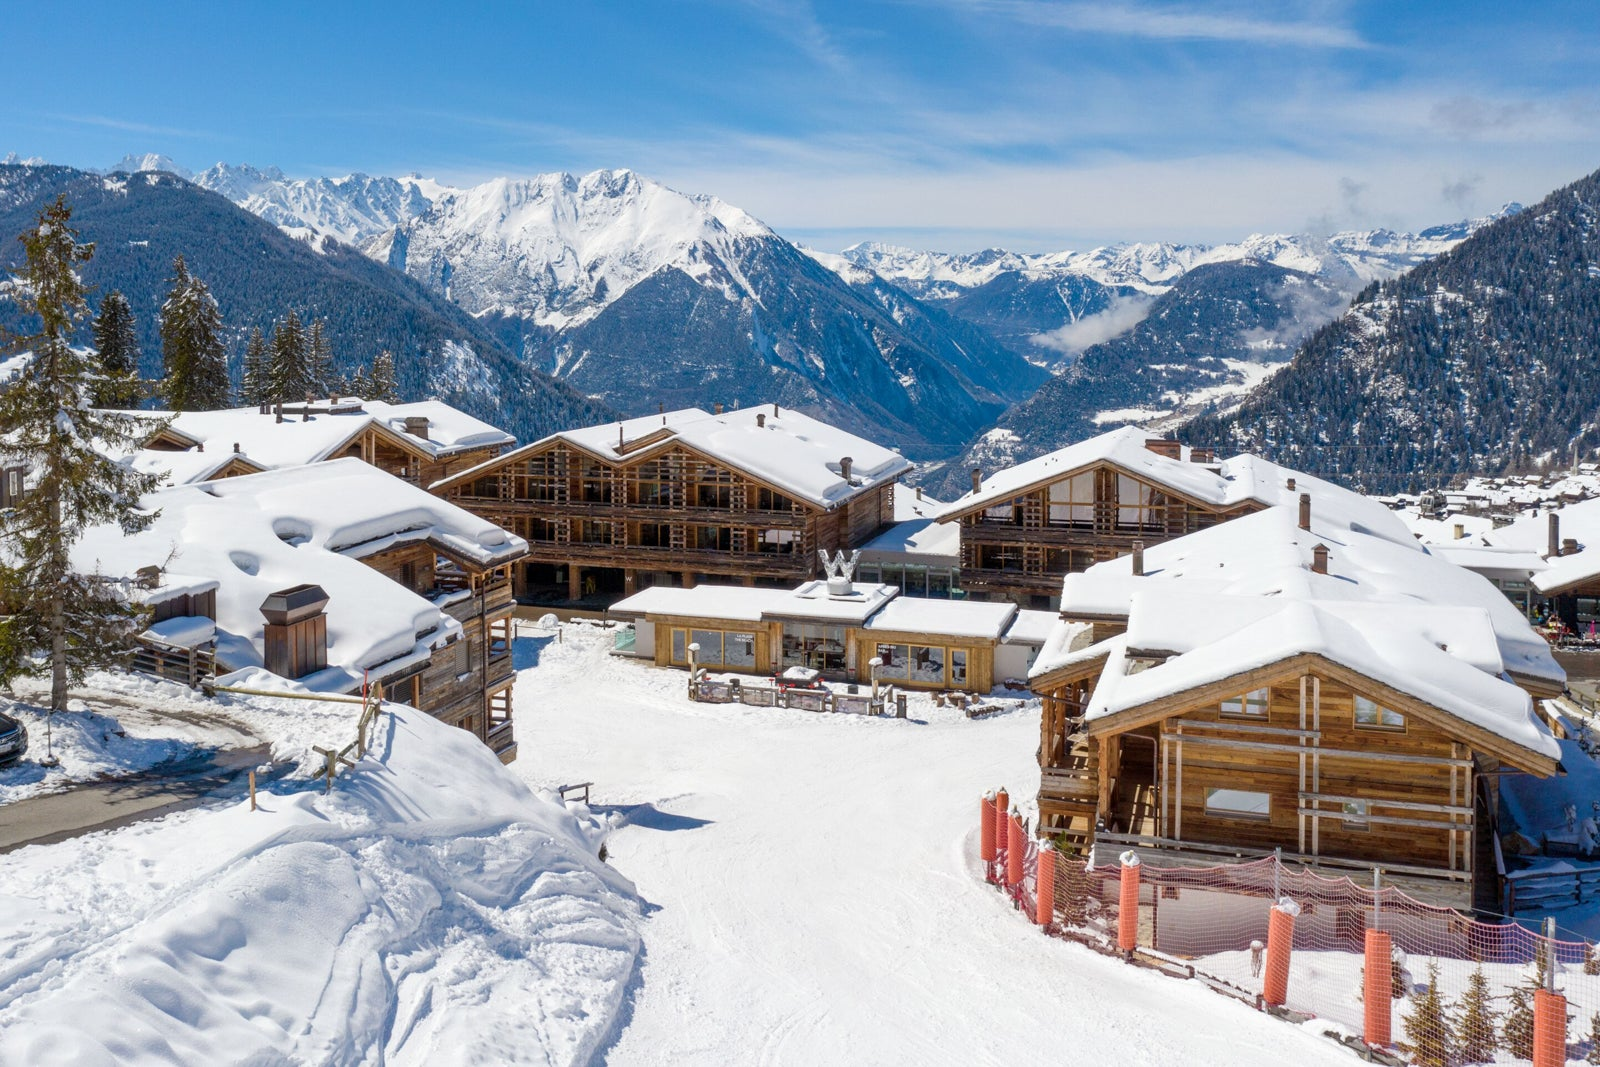 Our favorite ski resort hotels you can book with points